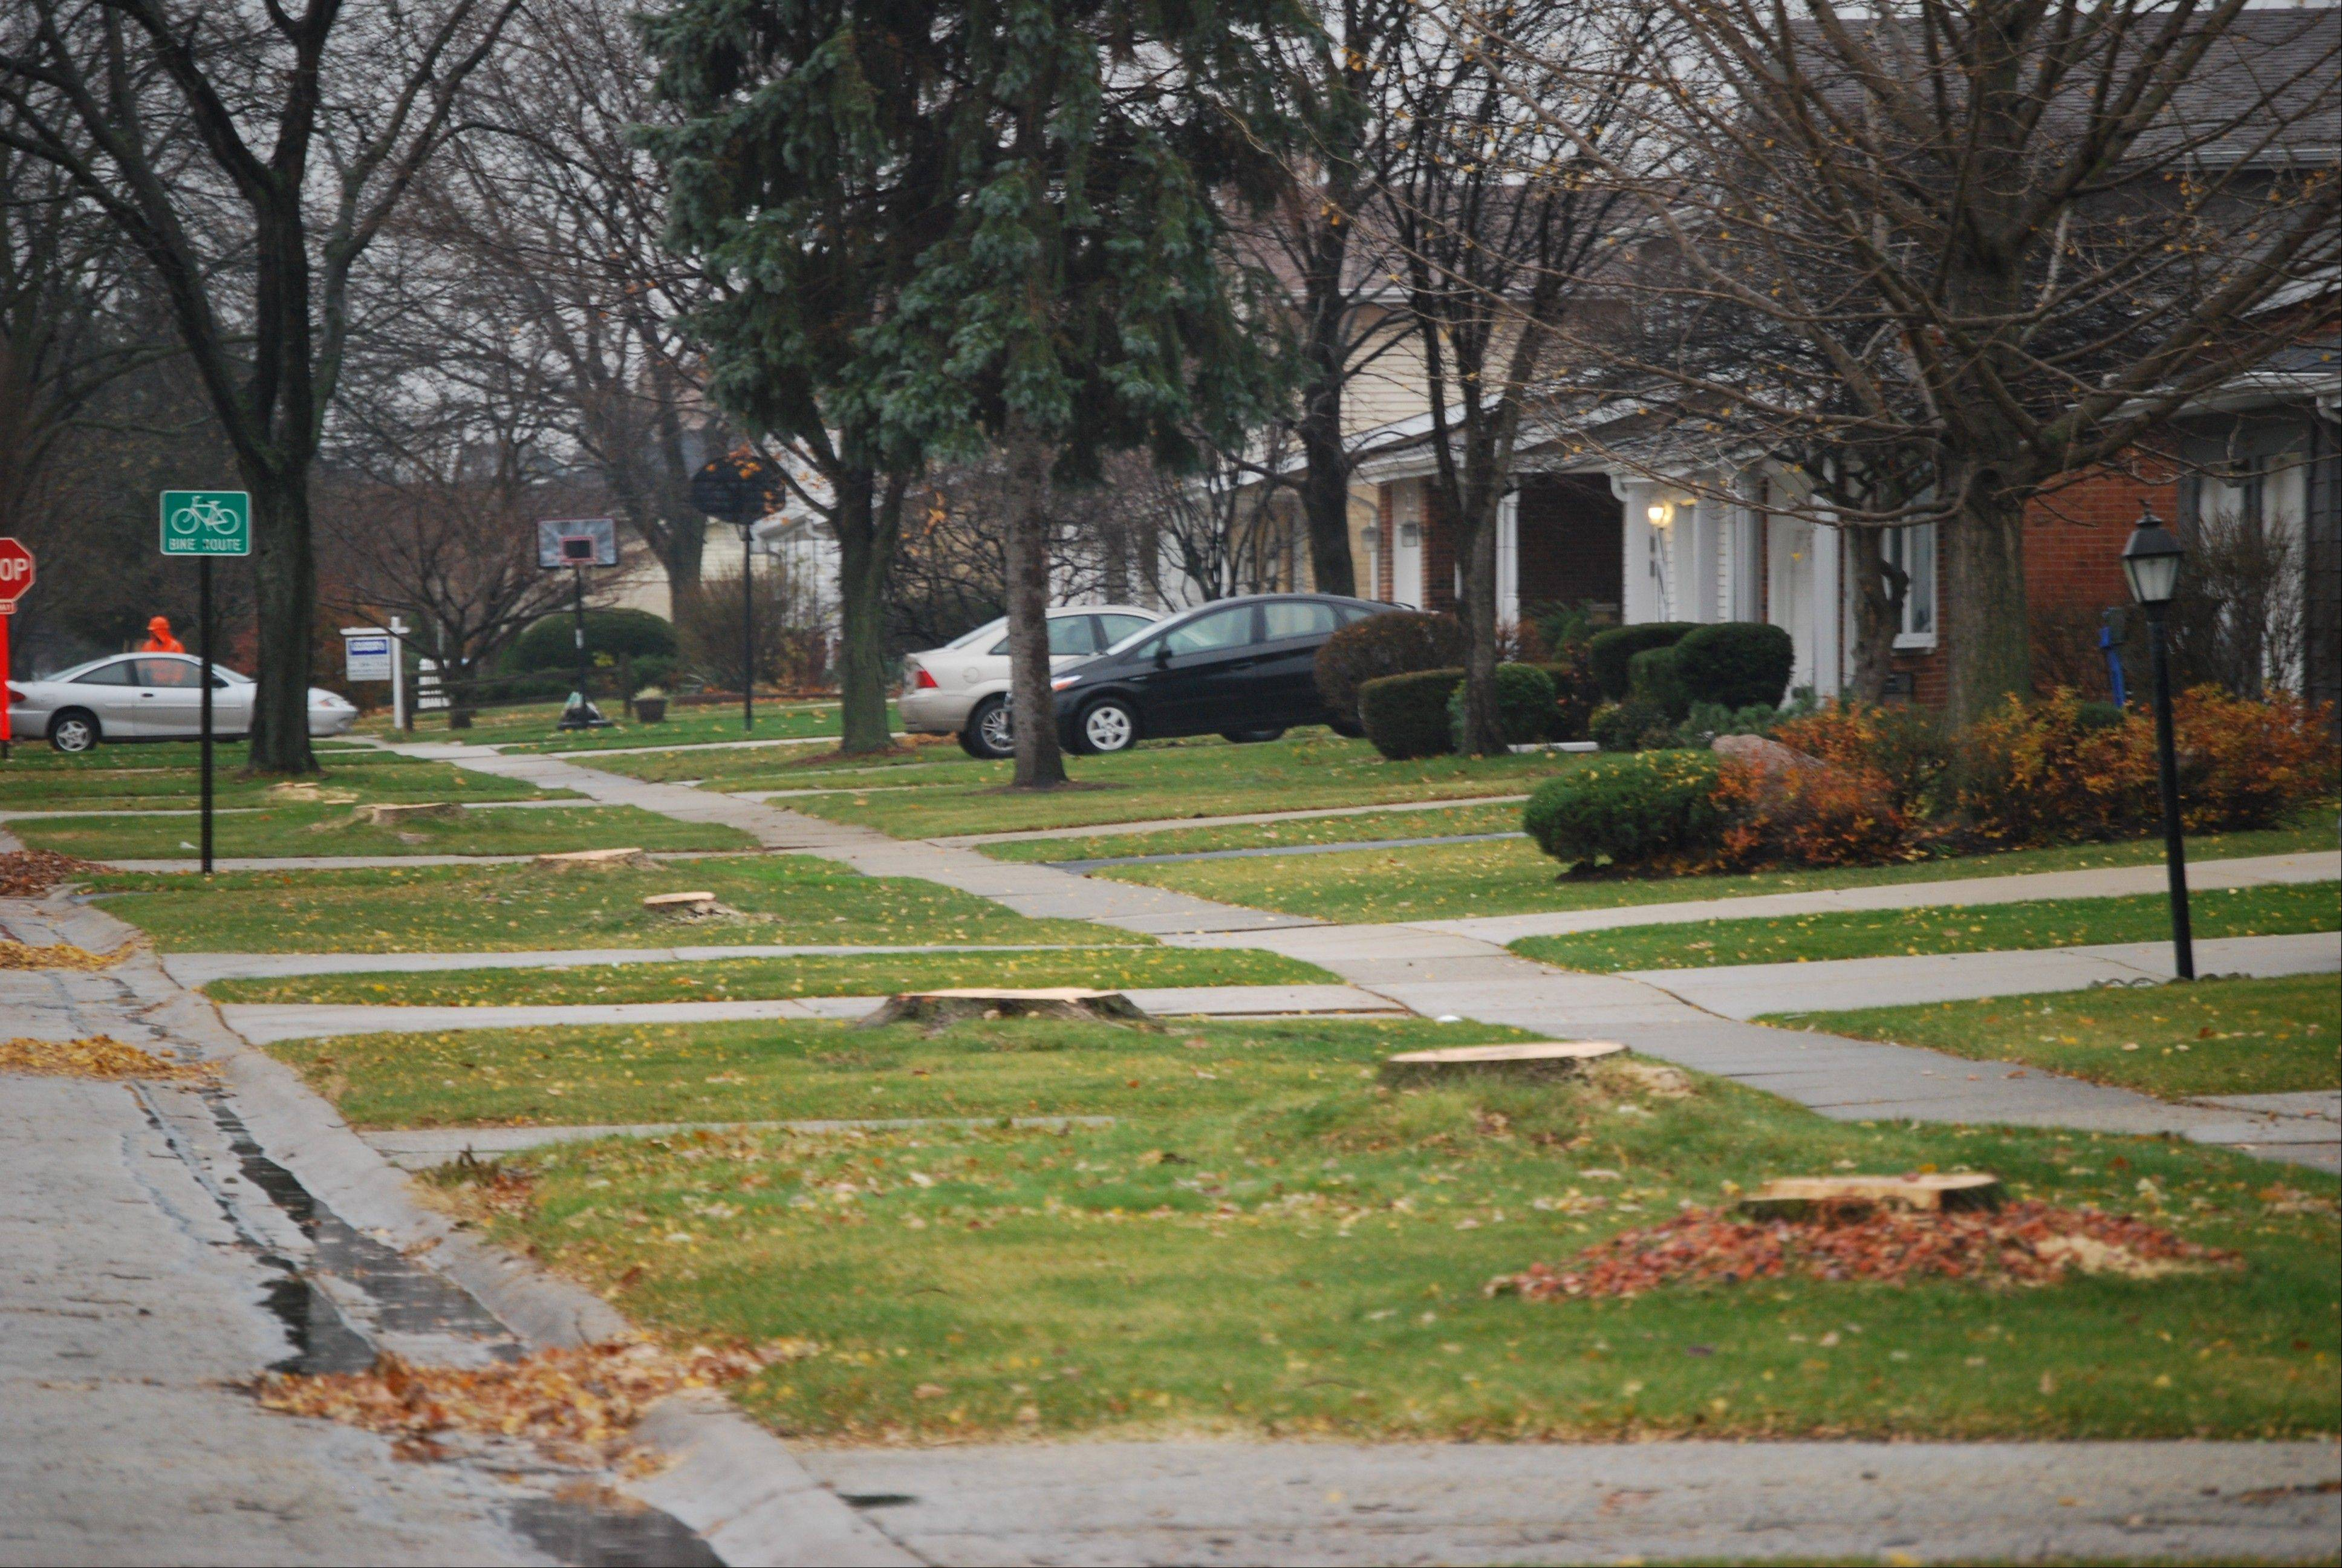 Residents in areas like the 1800 block of Willow Lane in Mount Prospect are worried about losing beloved trees to emerald ash borer infestation and are asking village officials about alternatives to cutting down the trees.